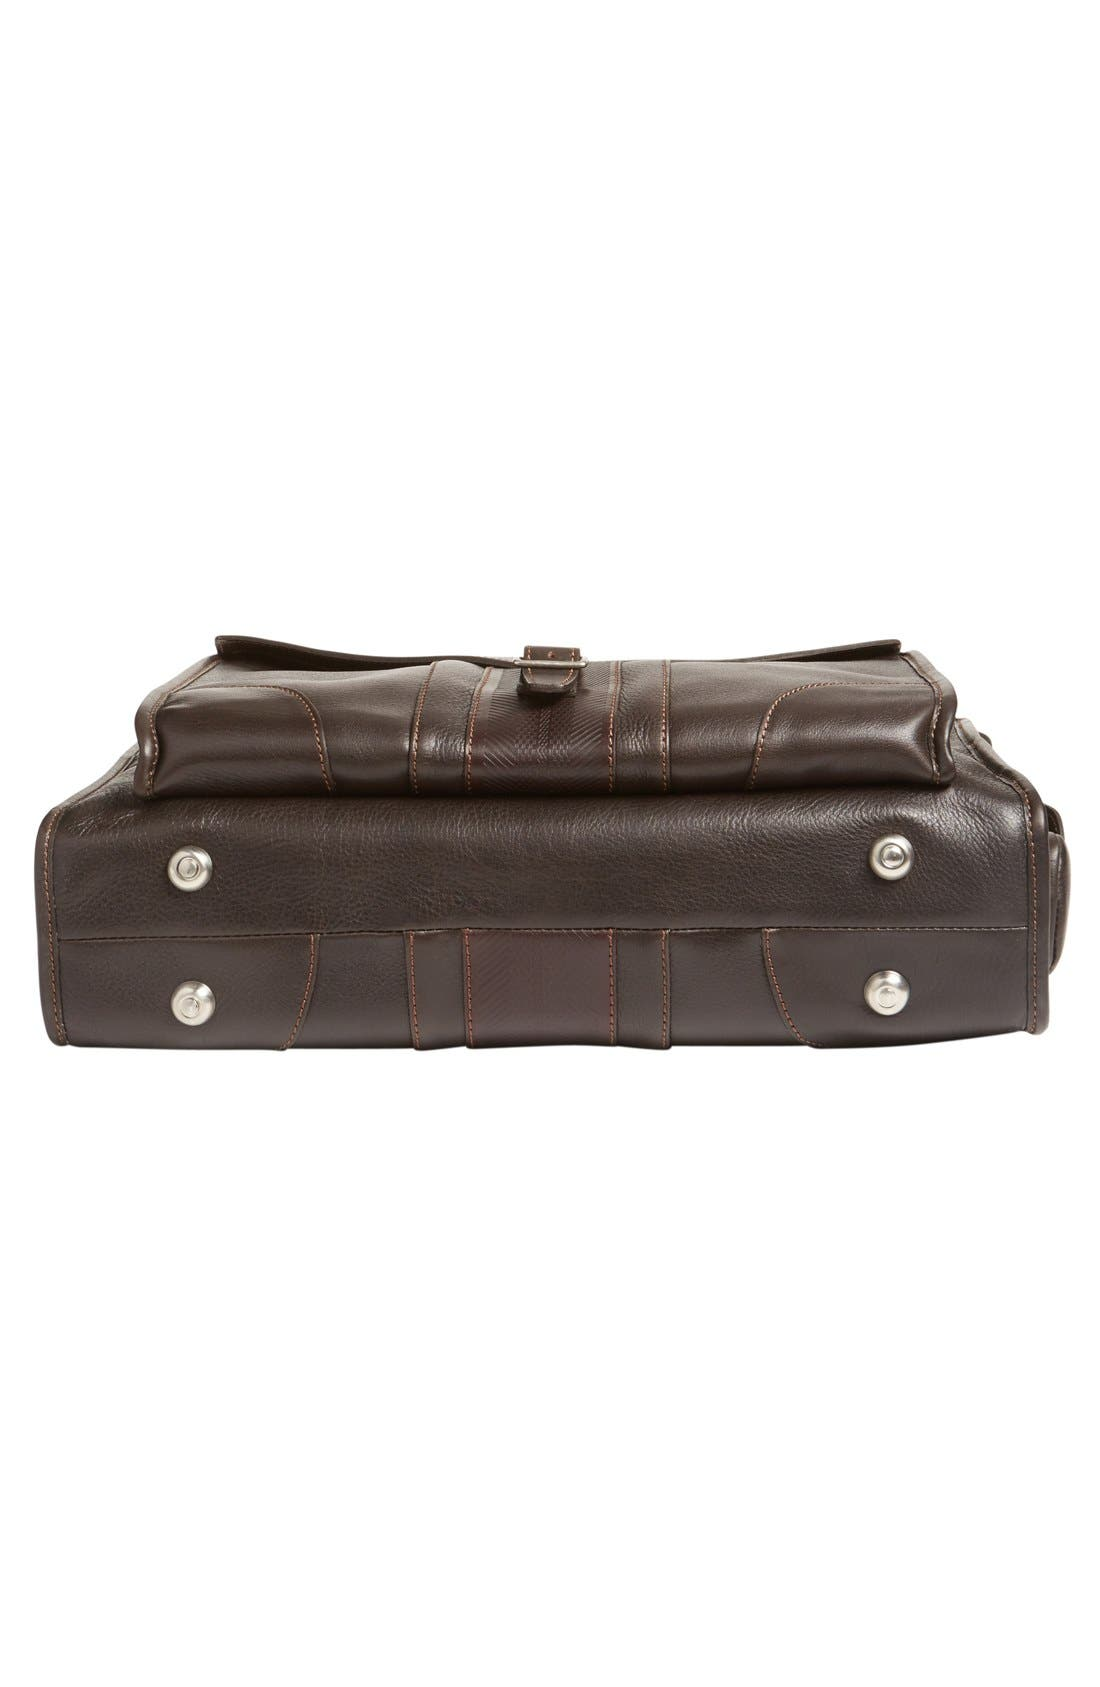 'Rudyard - Martingale' Briefcase,                             Alternate thumbnail 6, color,                             Dark Brown